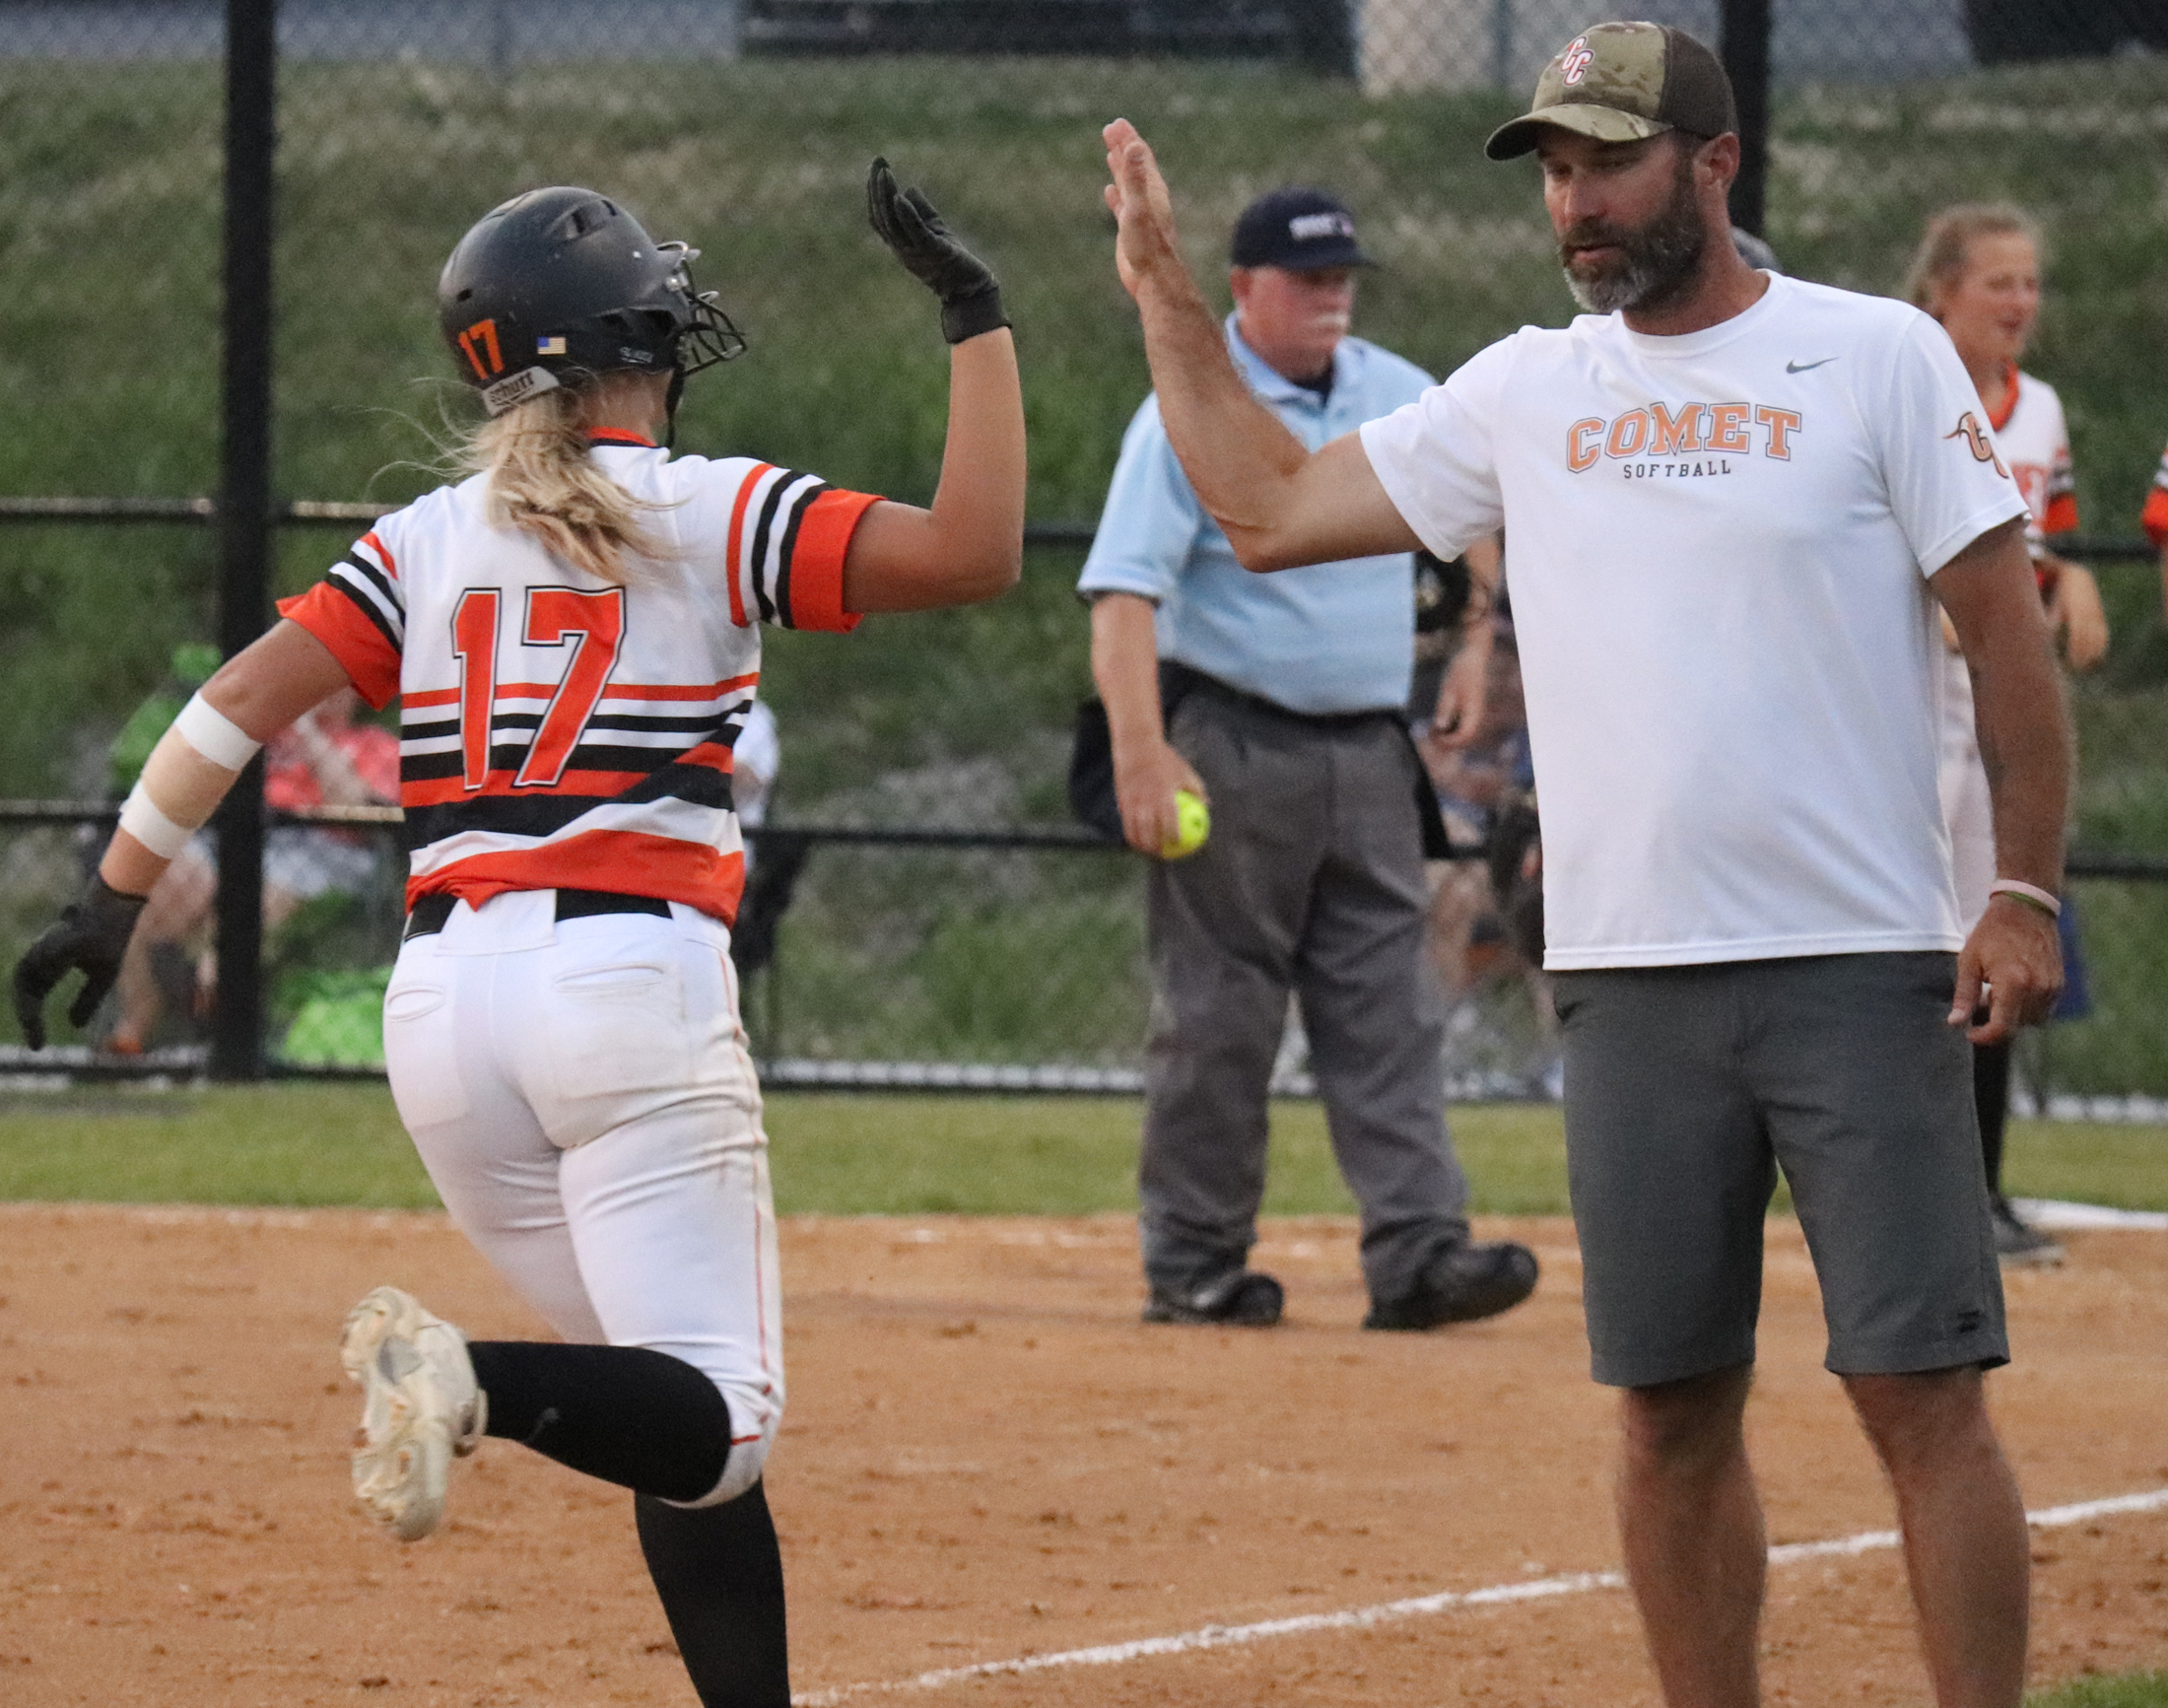 Power and speed propel Comets past Indians 12-2